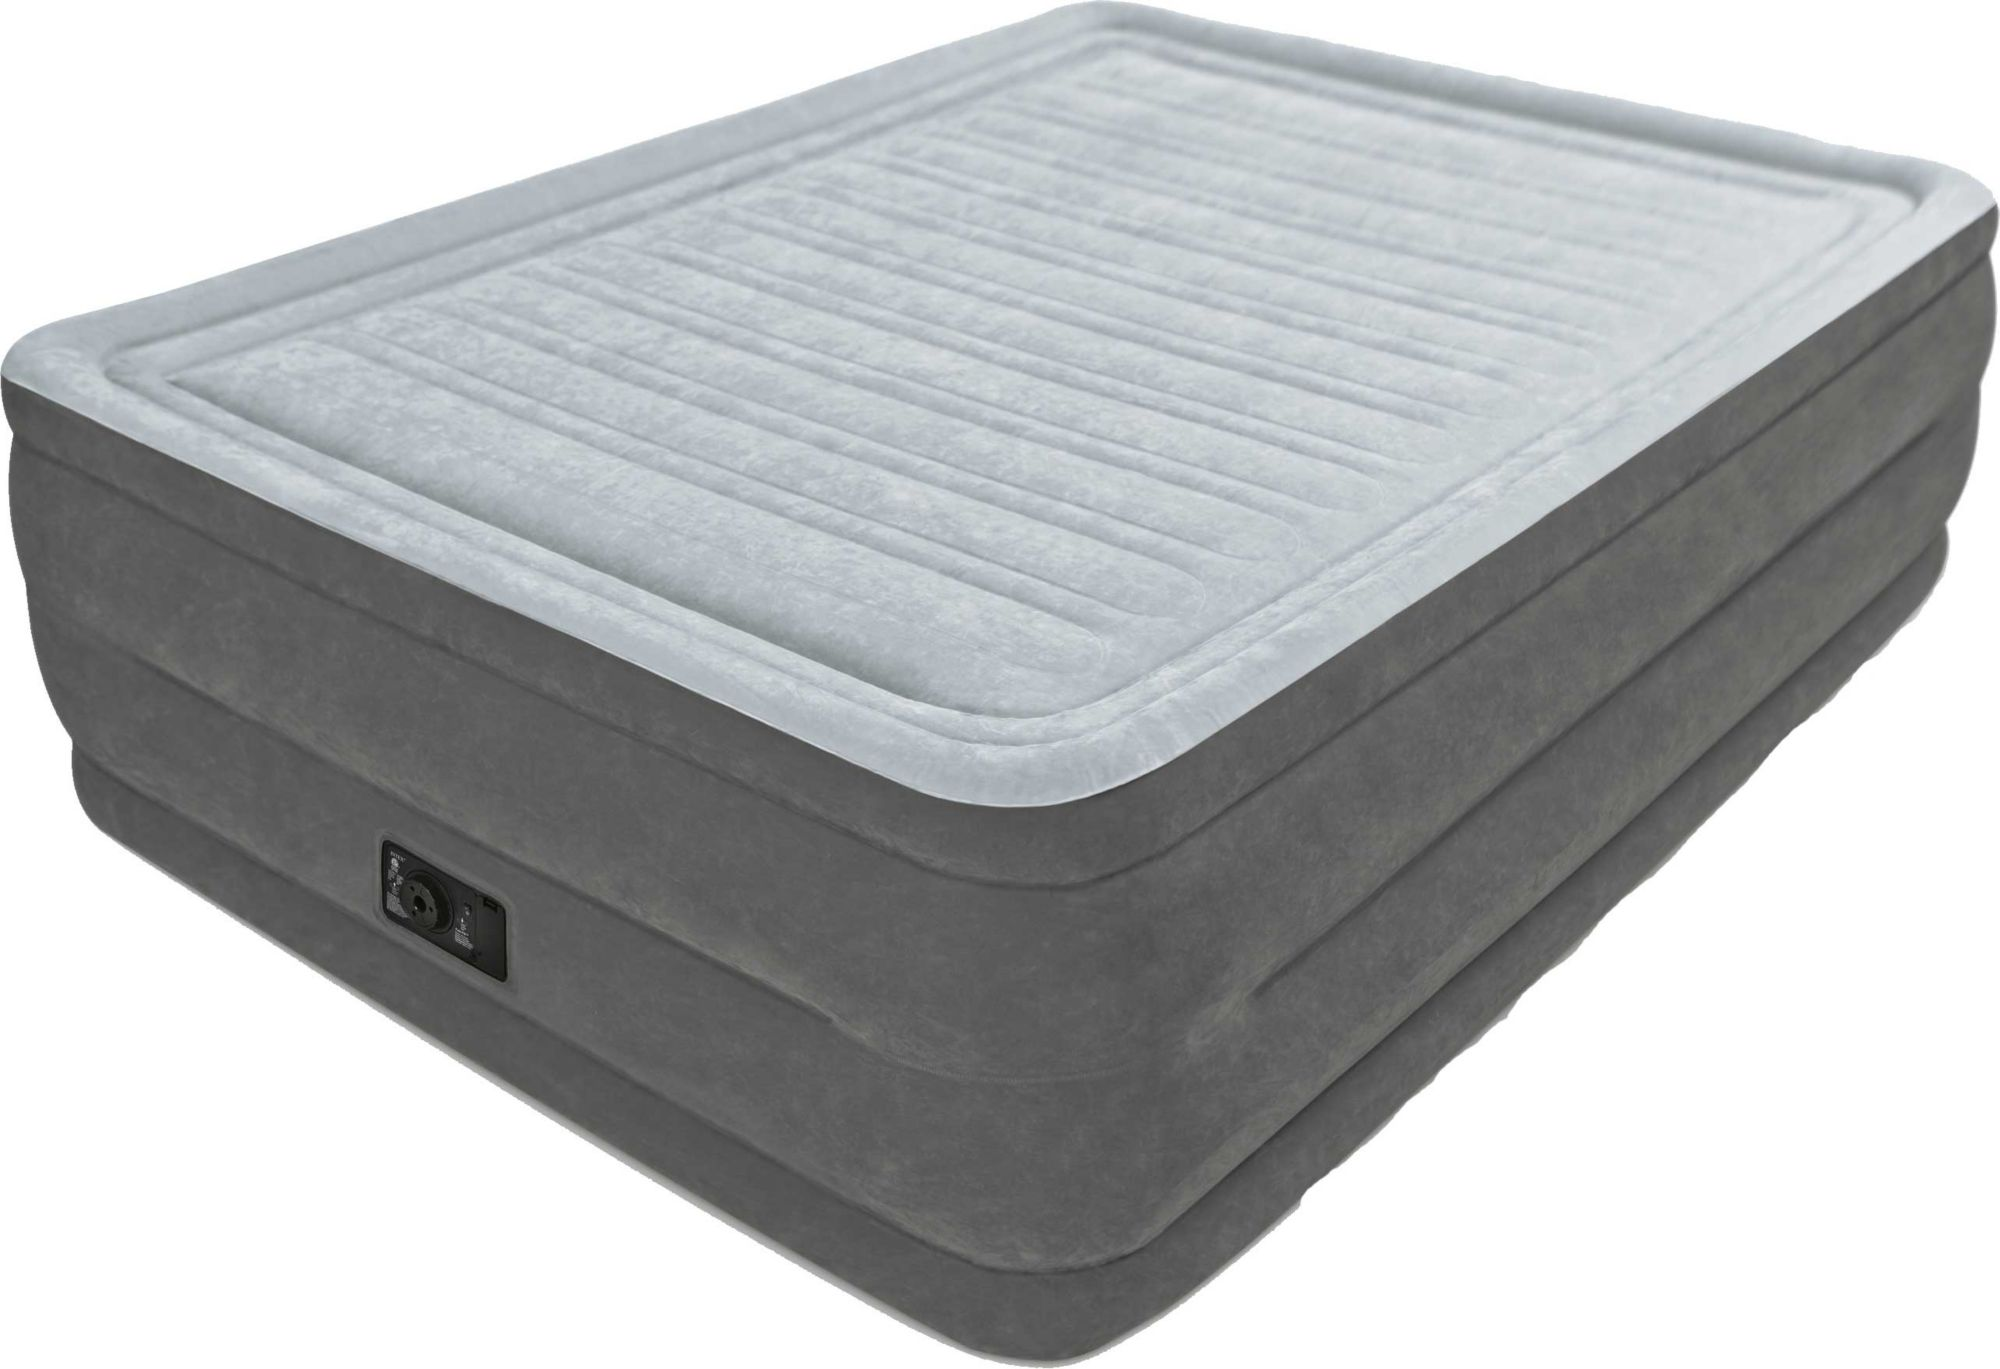 even home beds popular and they set are heavy or around pin to bed though quite among carry inflatable very pretty some airbeds easy stagers quick